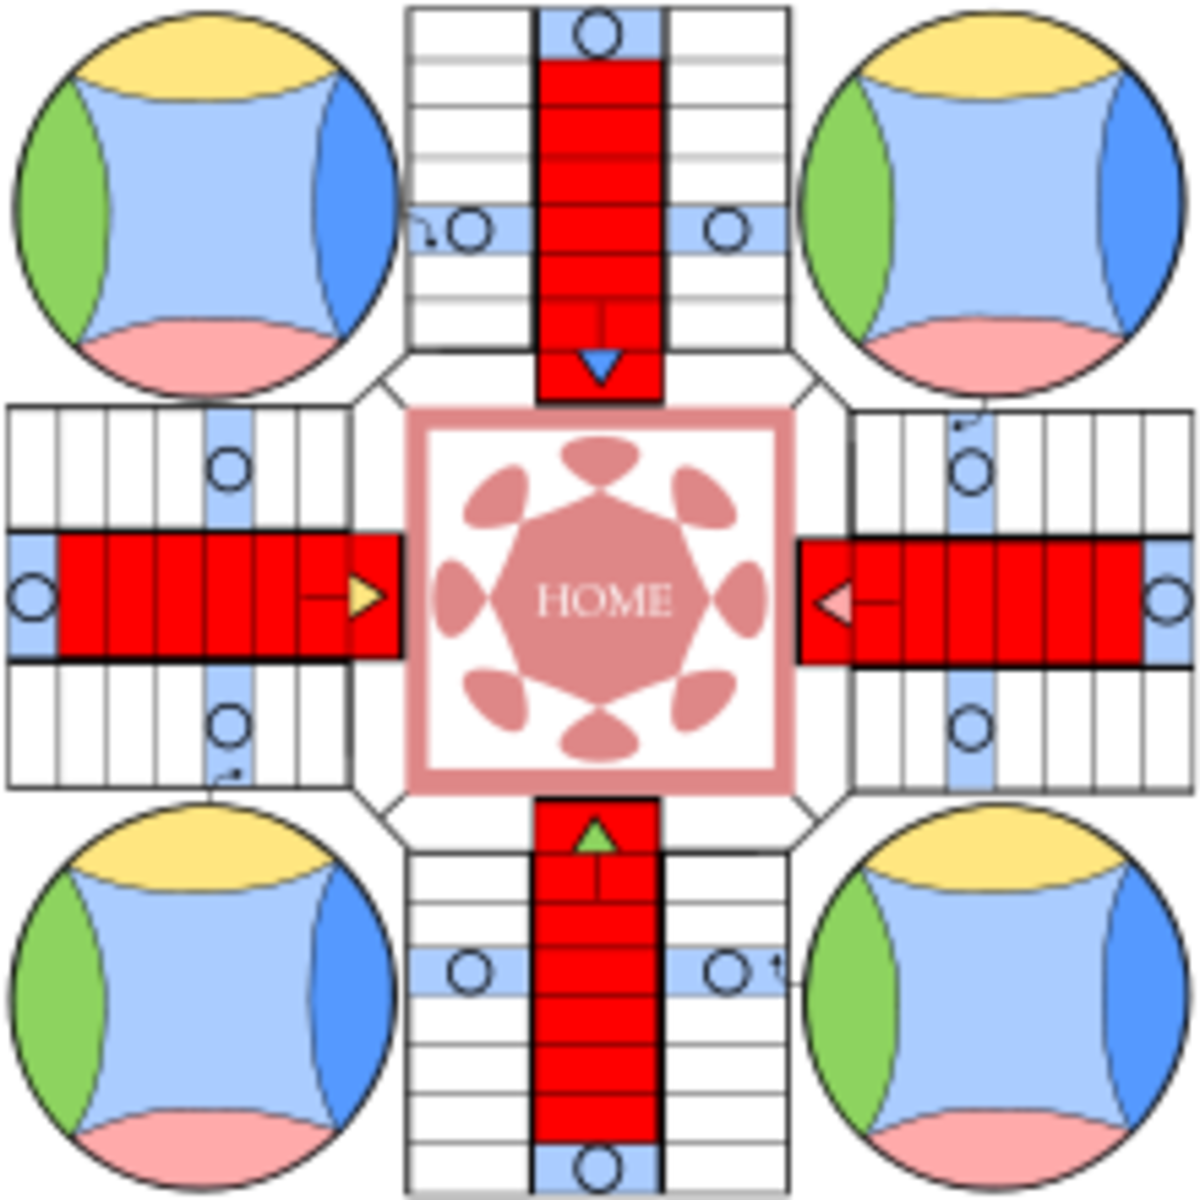 Picture of Parcheesi Board (courtesy of wiki.org)